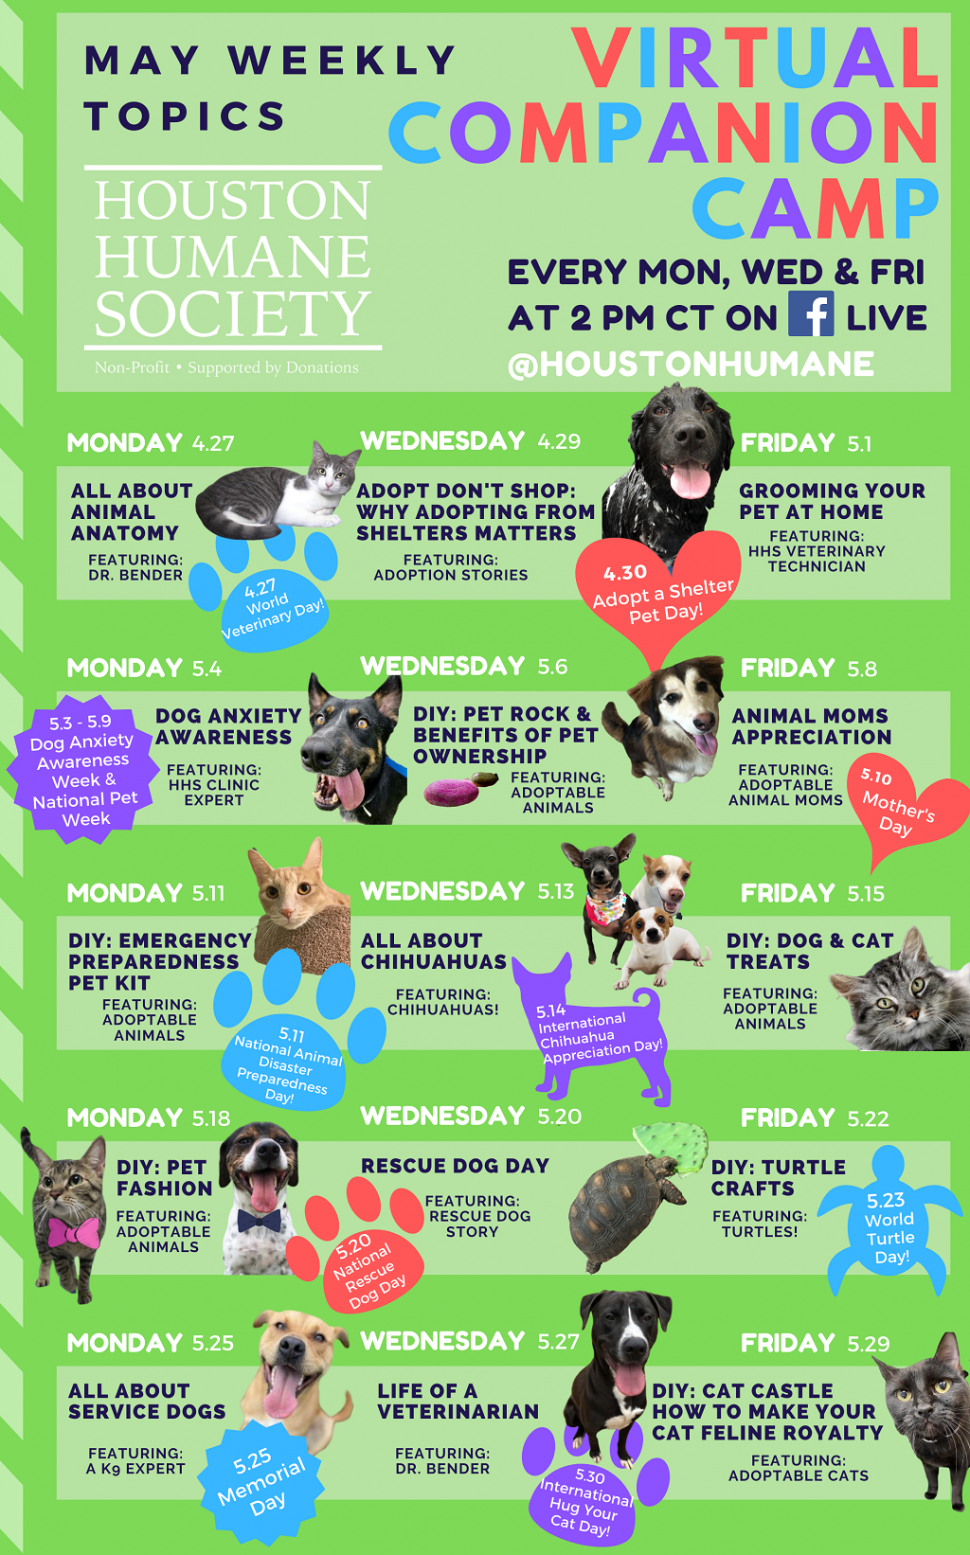 Virtual Event Virtual Companion Camp At 2pm Central With Houston Humane Society Kids Out And About Rochester